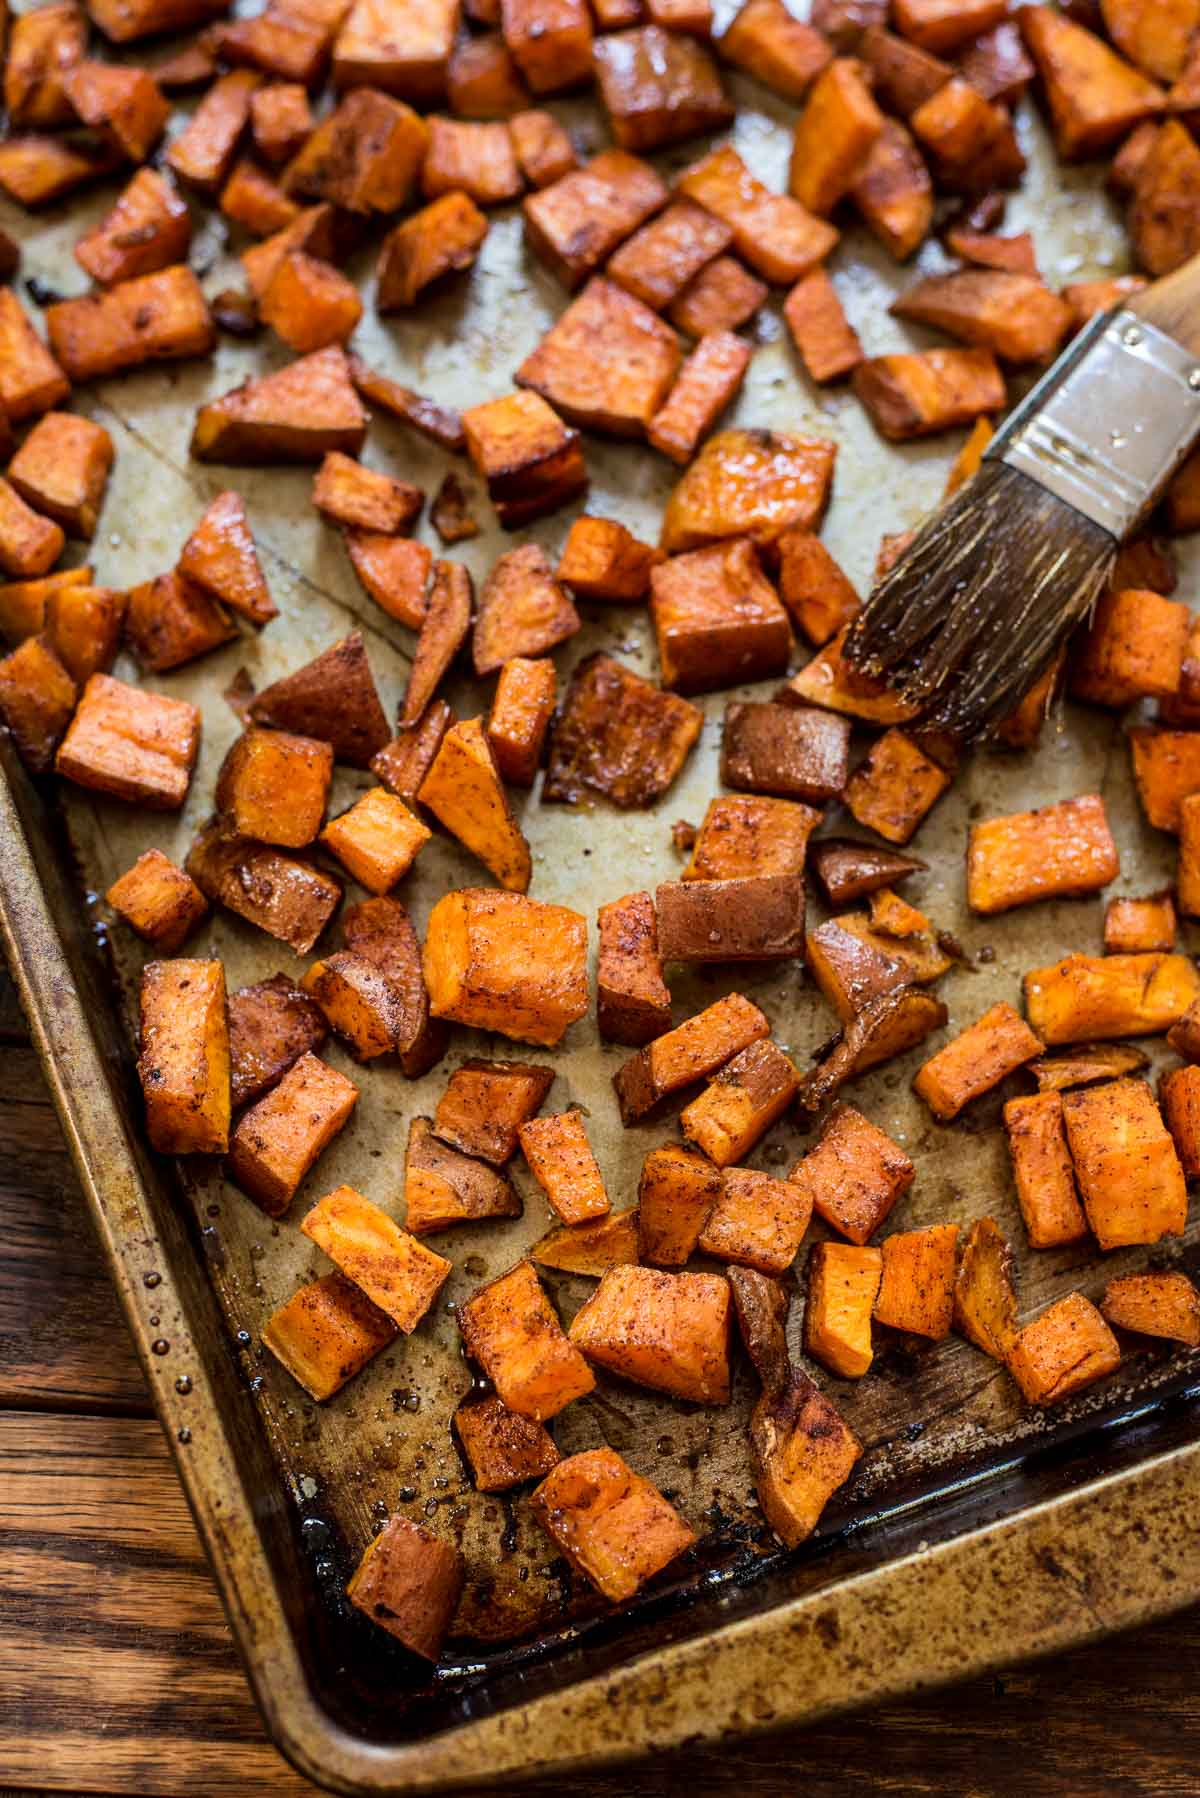 If you're in need of a quick and easy side dish for fall, look no further than these Maple Roasted Sweet Potatoes. They're incredibly delicious and simple to make!